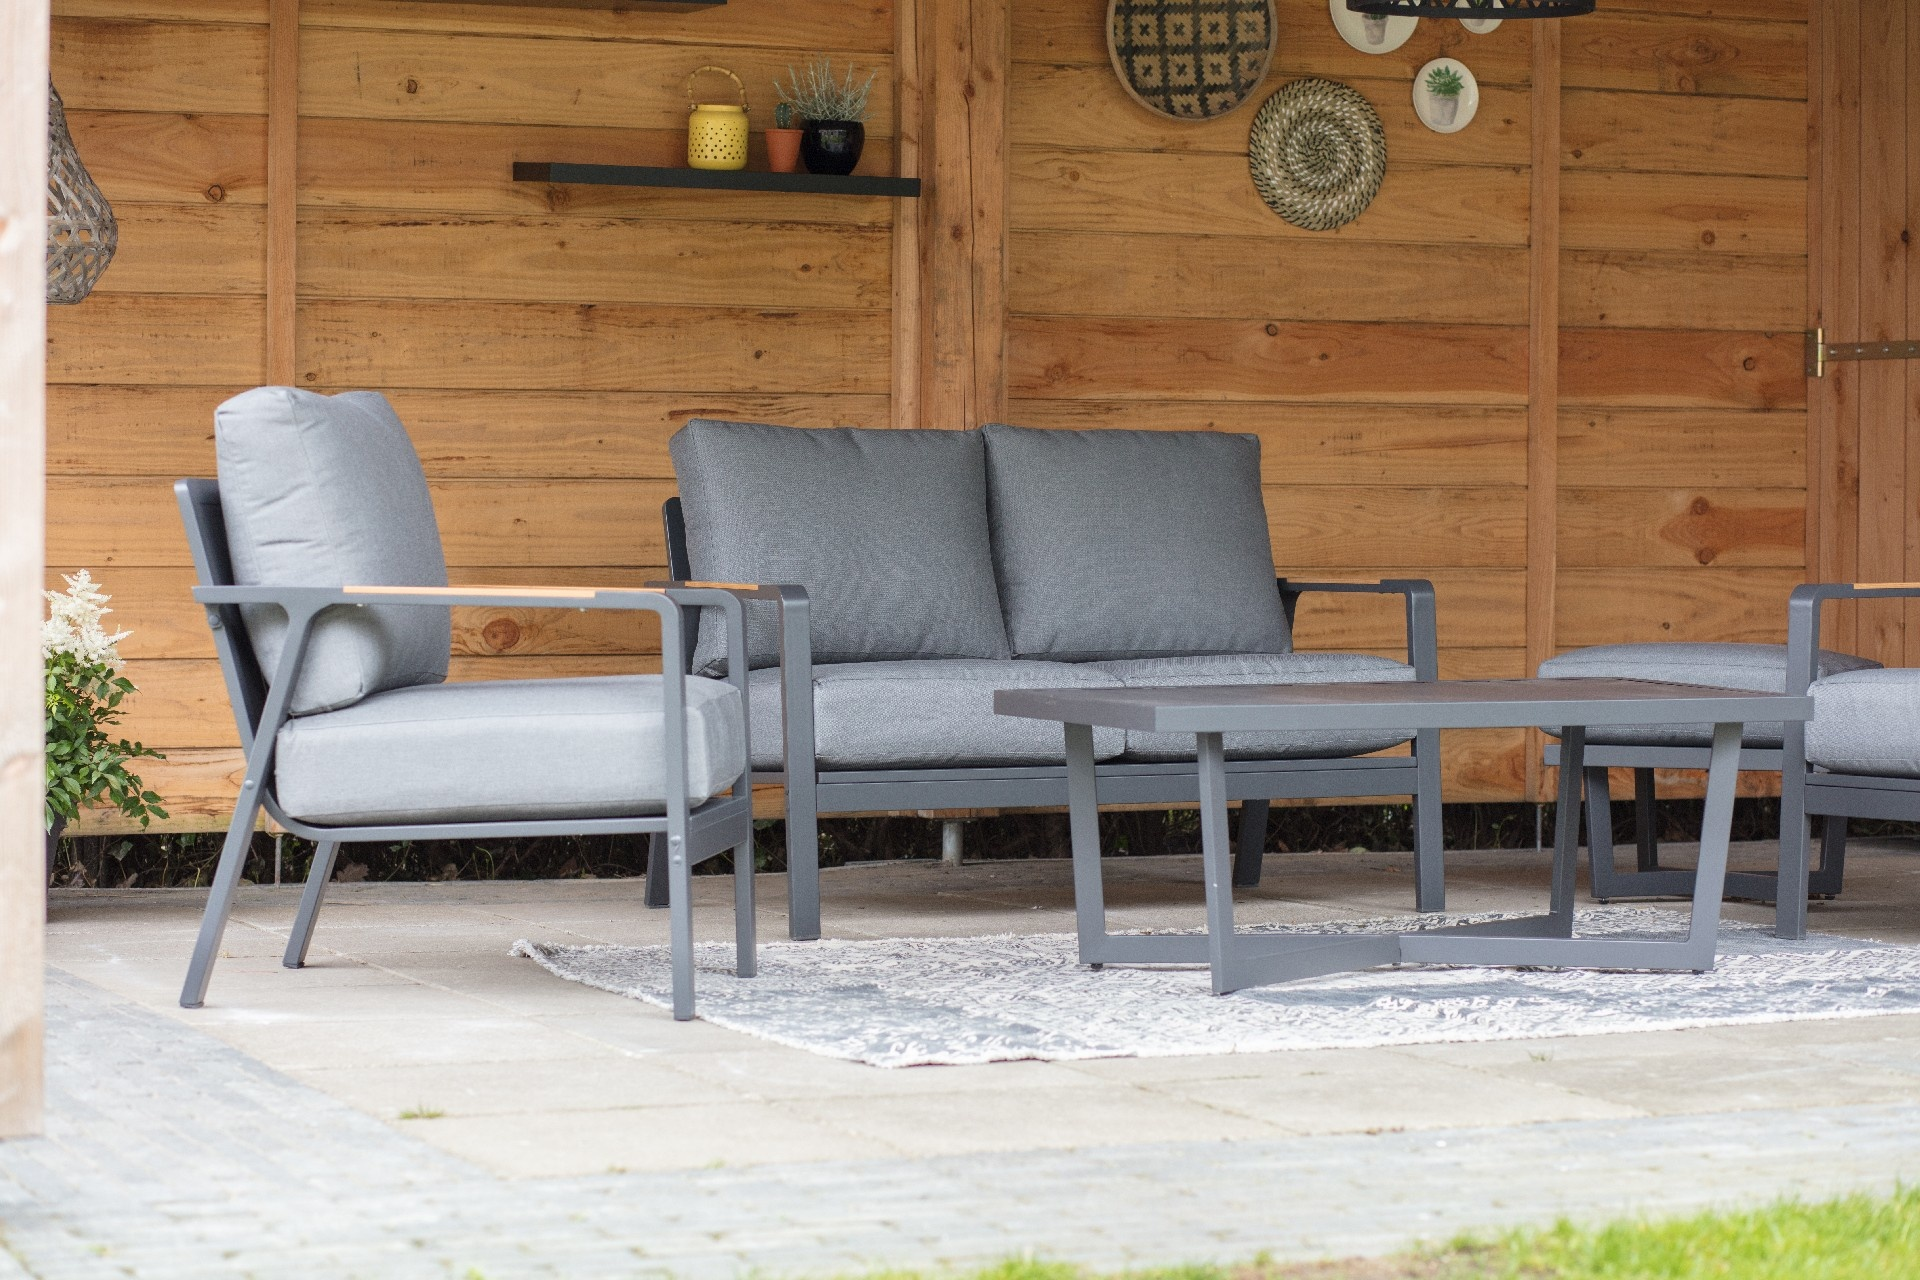 4 Persoons Design Bank.Stoel Bank Loungeset 4 Persoons Mai Tai Antraciet Lesli